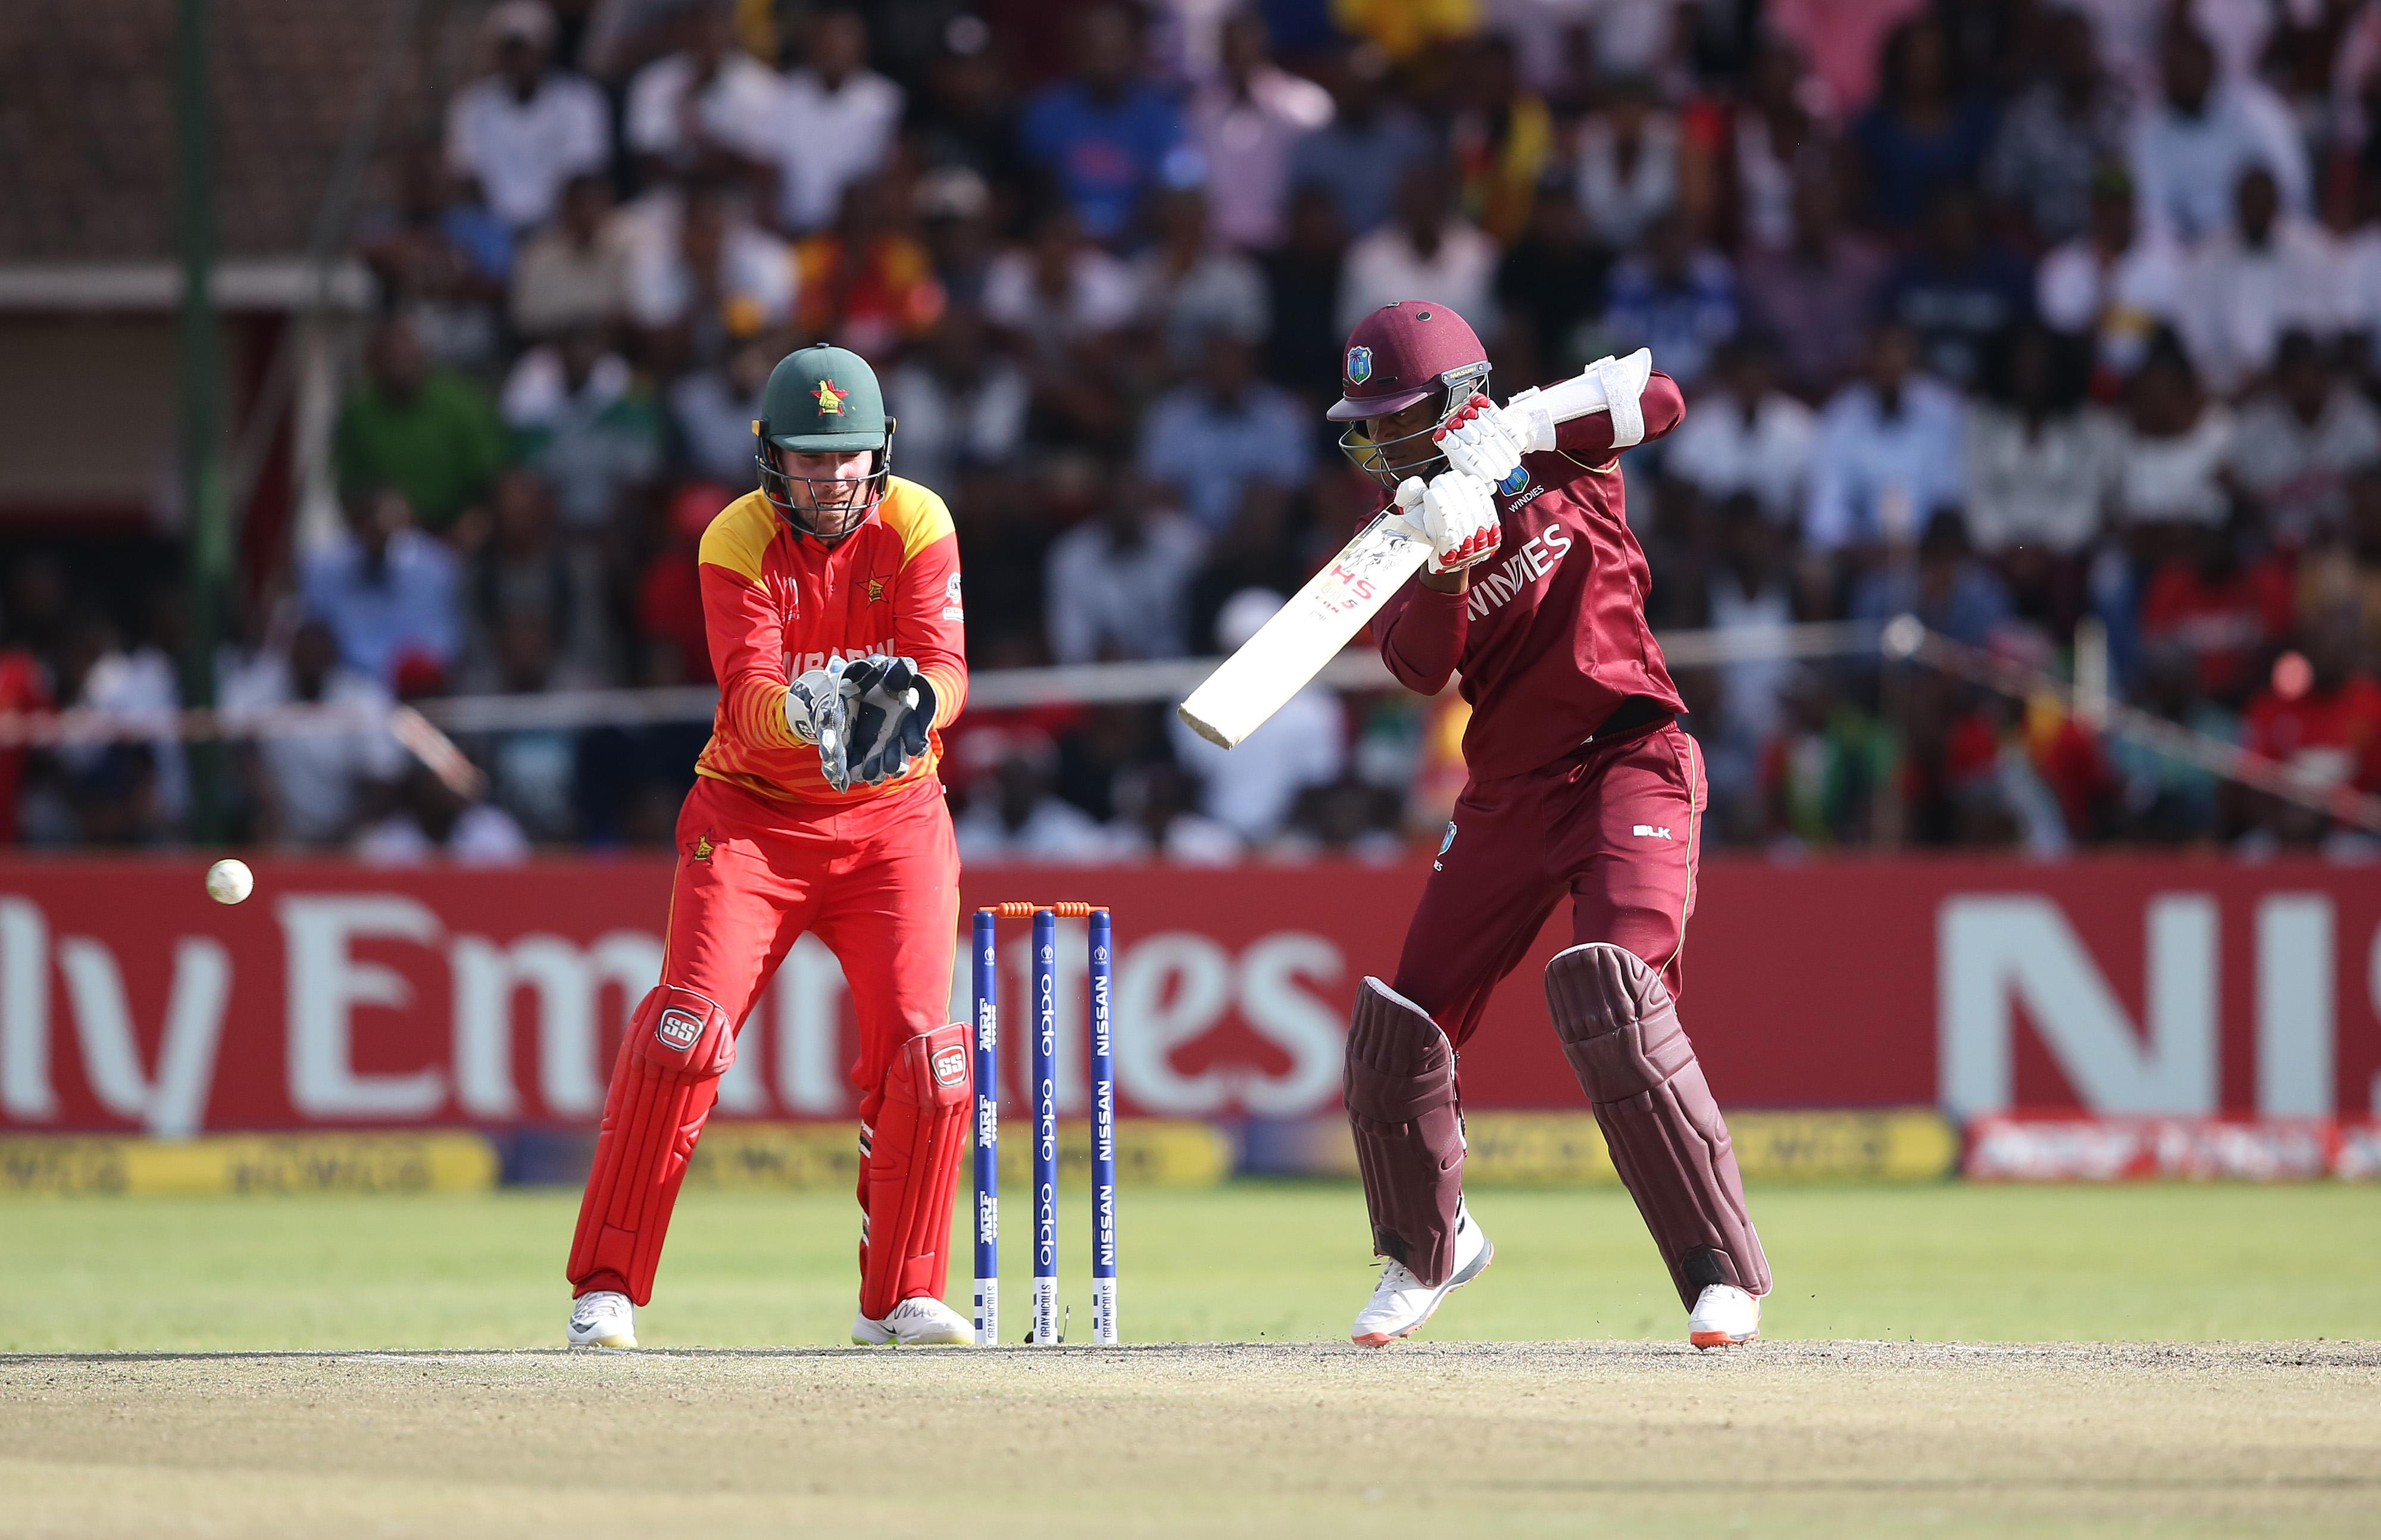 Win S Overcome Late Scare To Beat Zimbabwe In Crucial